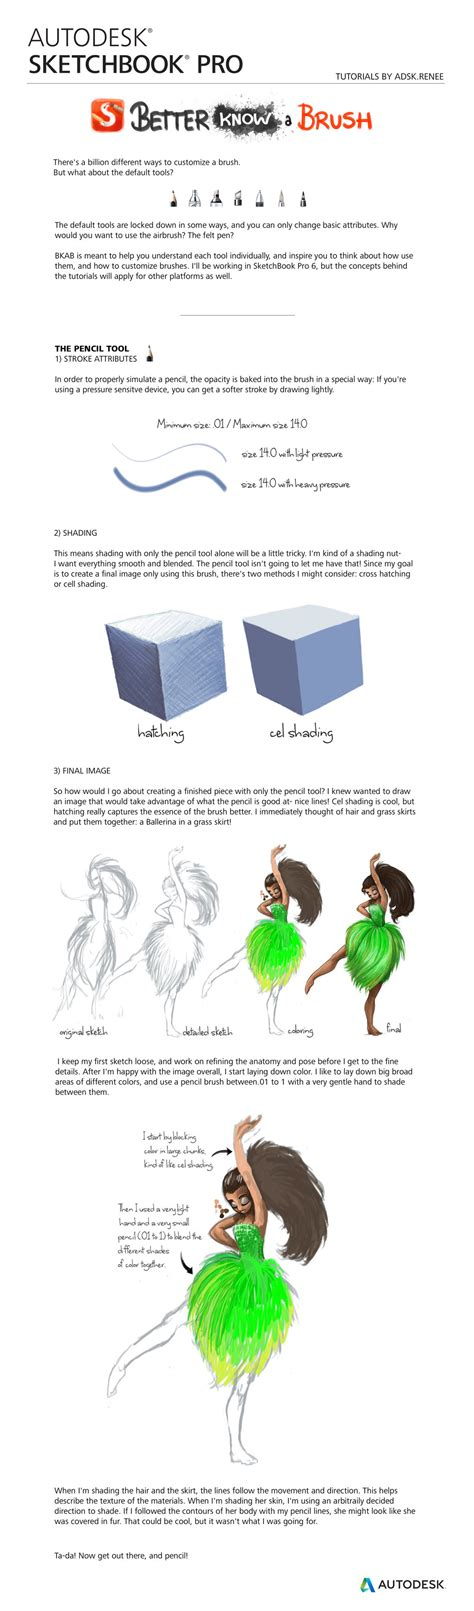 sketchbook pro student autodesk sketchbook pro bkab the pencil tutorial by